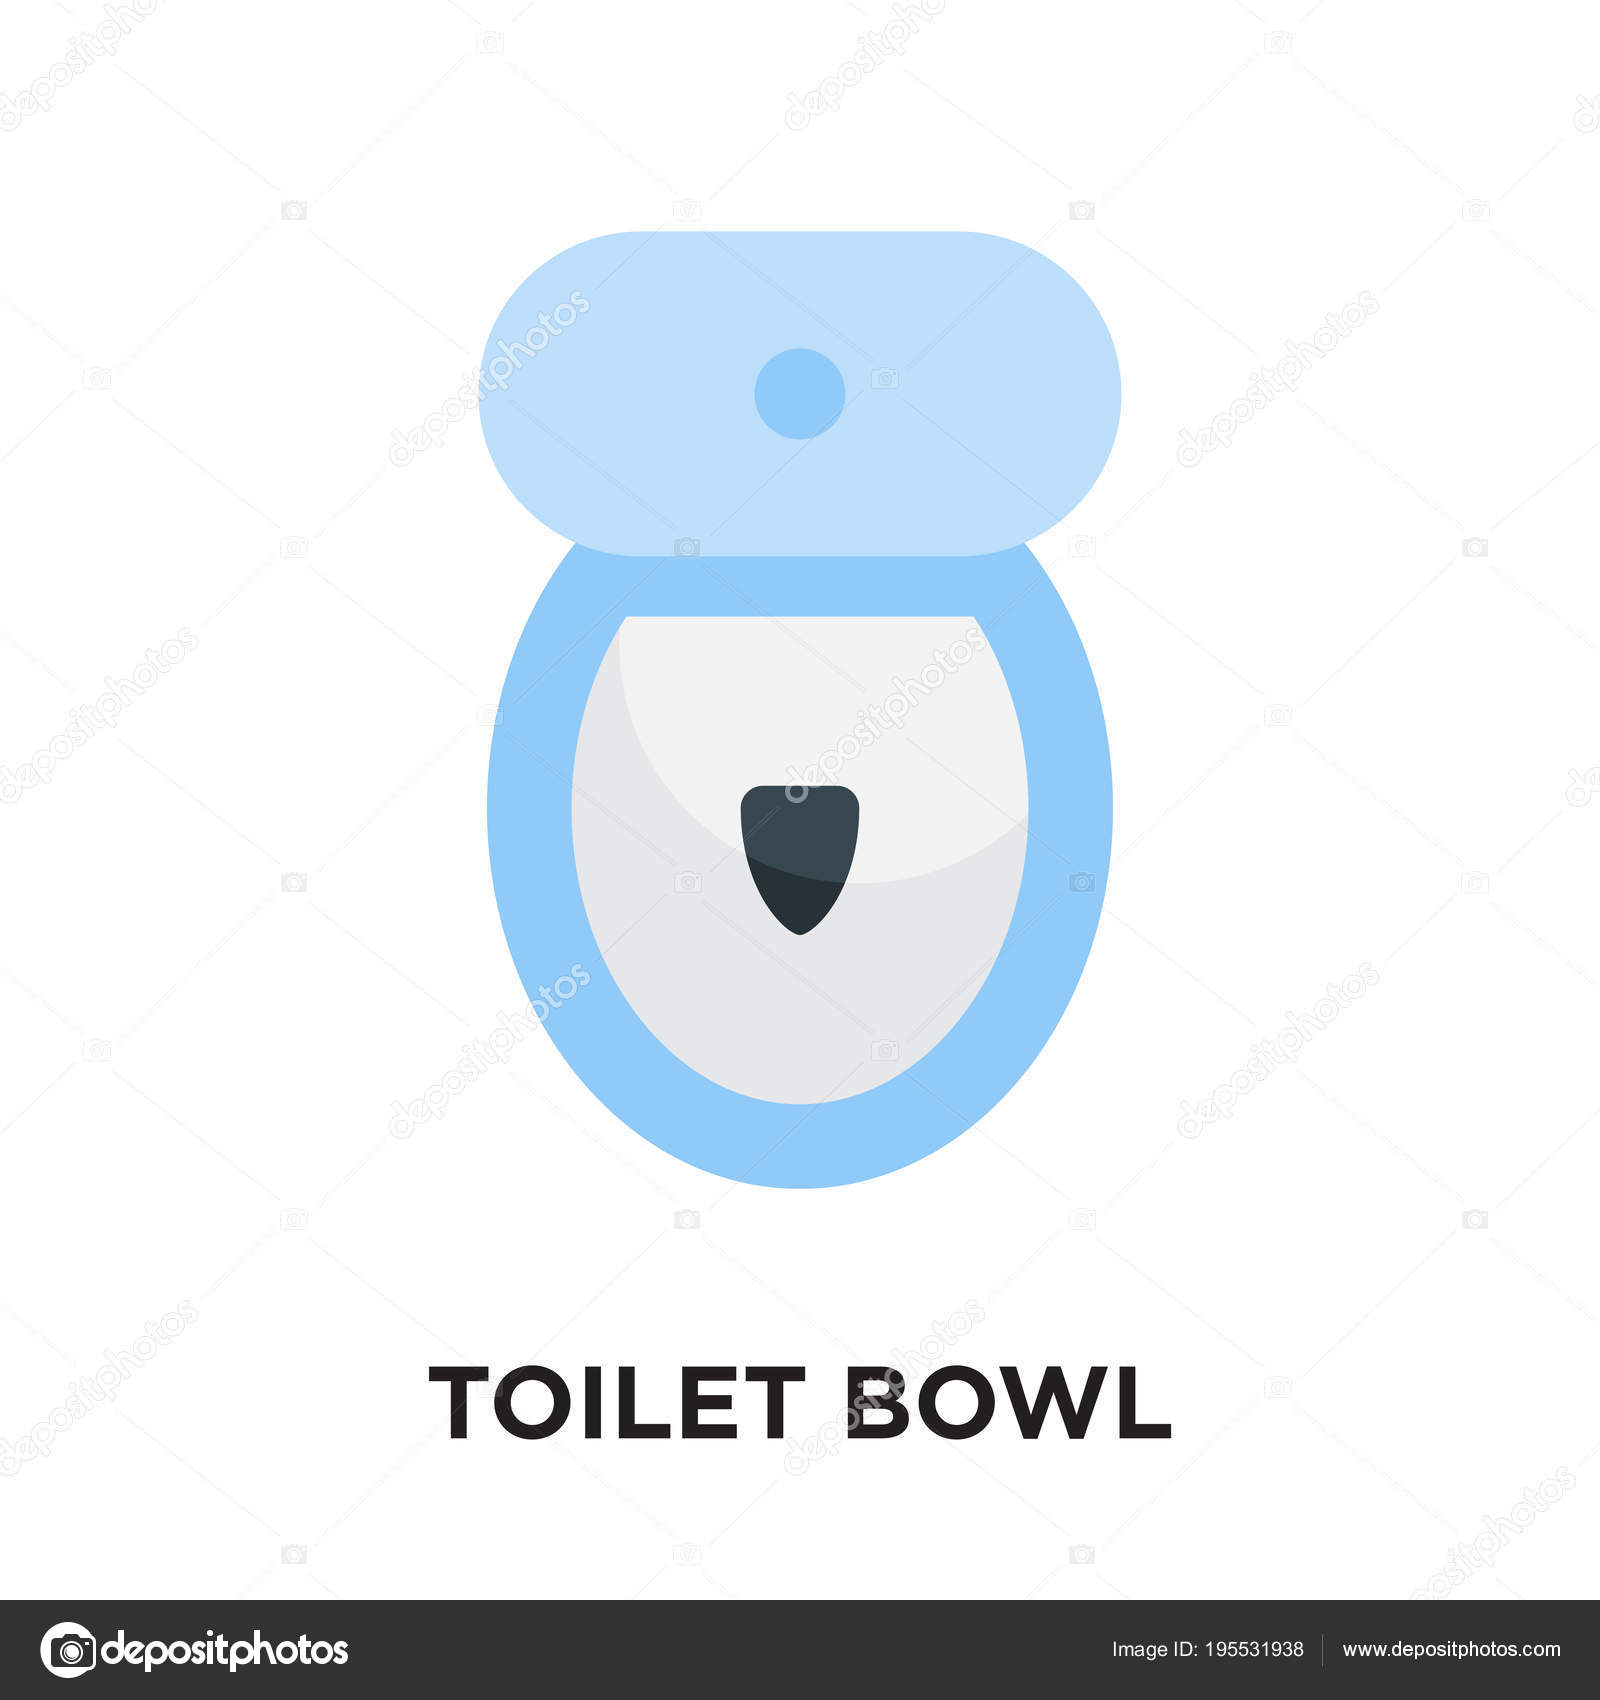 toilet bowl logo isolated on white background , colorful vector ...